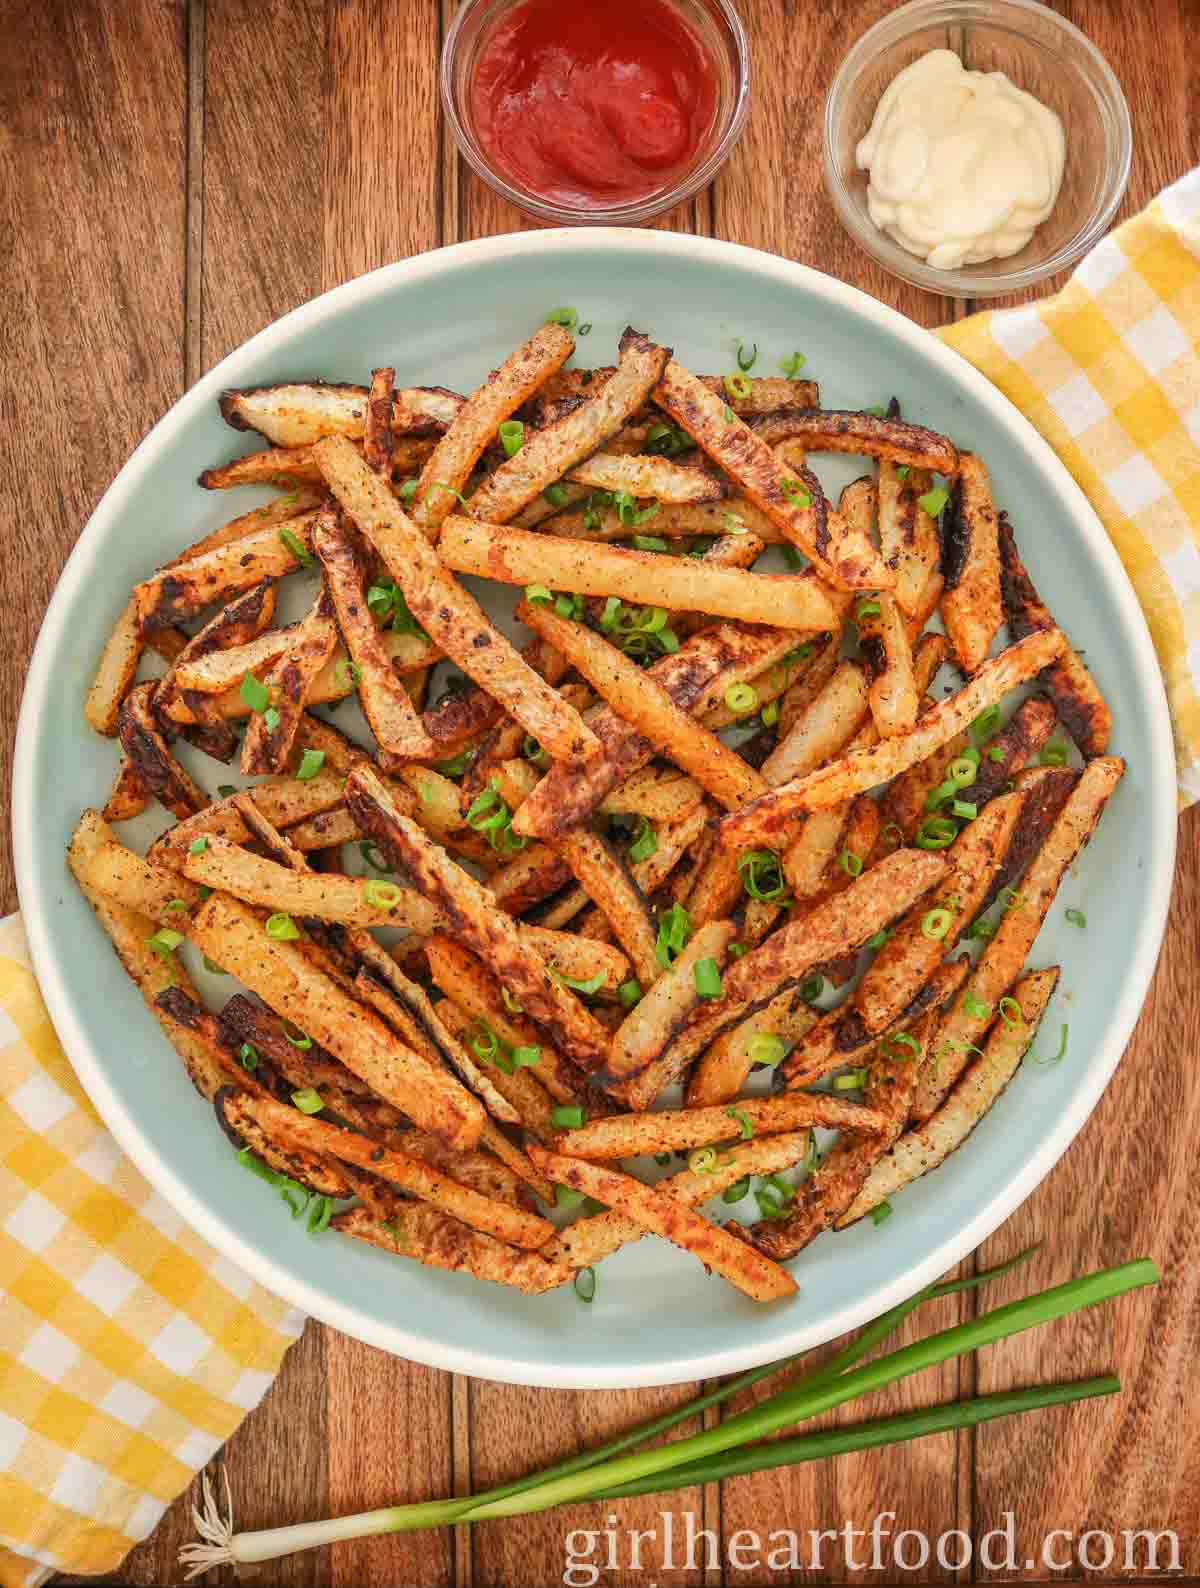 Blue plate of baked kohlrabi fries garnished with green onion and alongside dipping sauces.